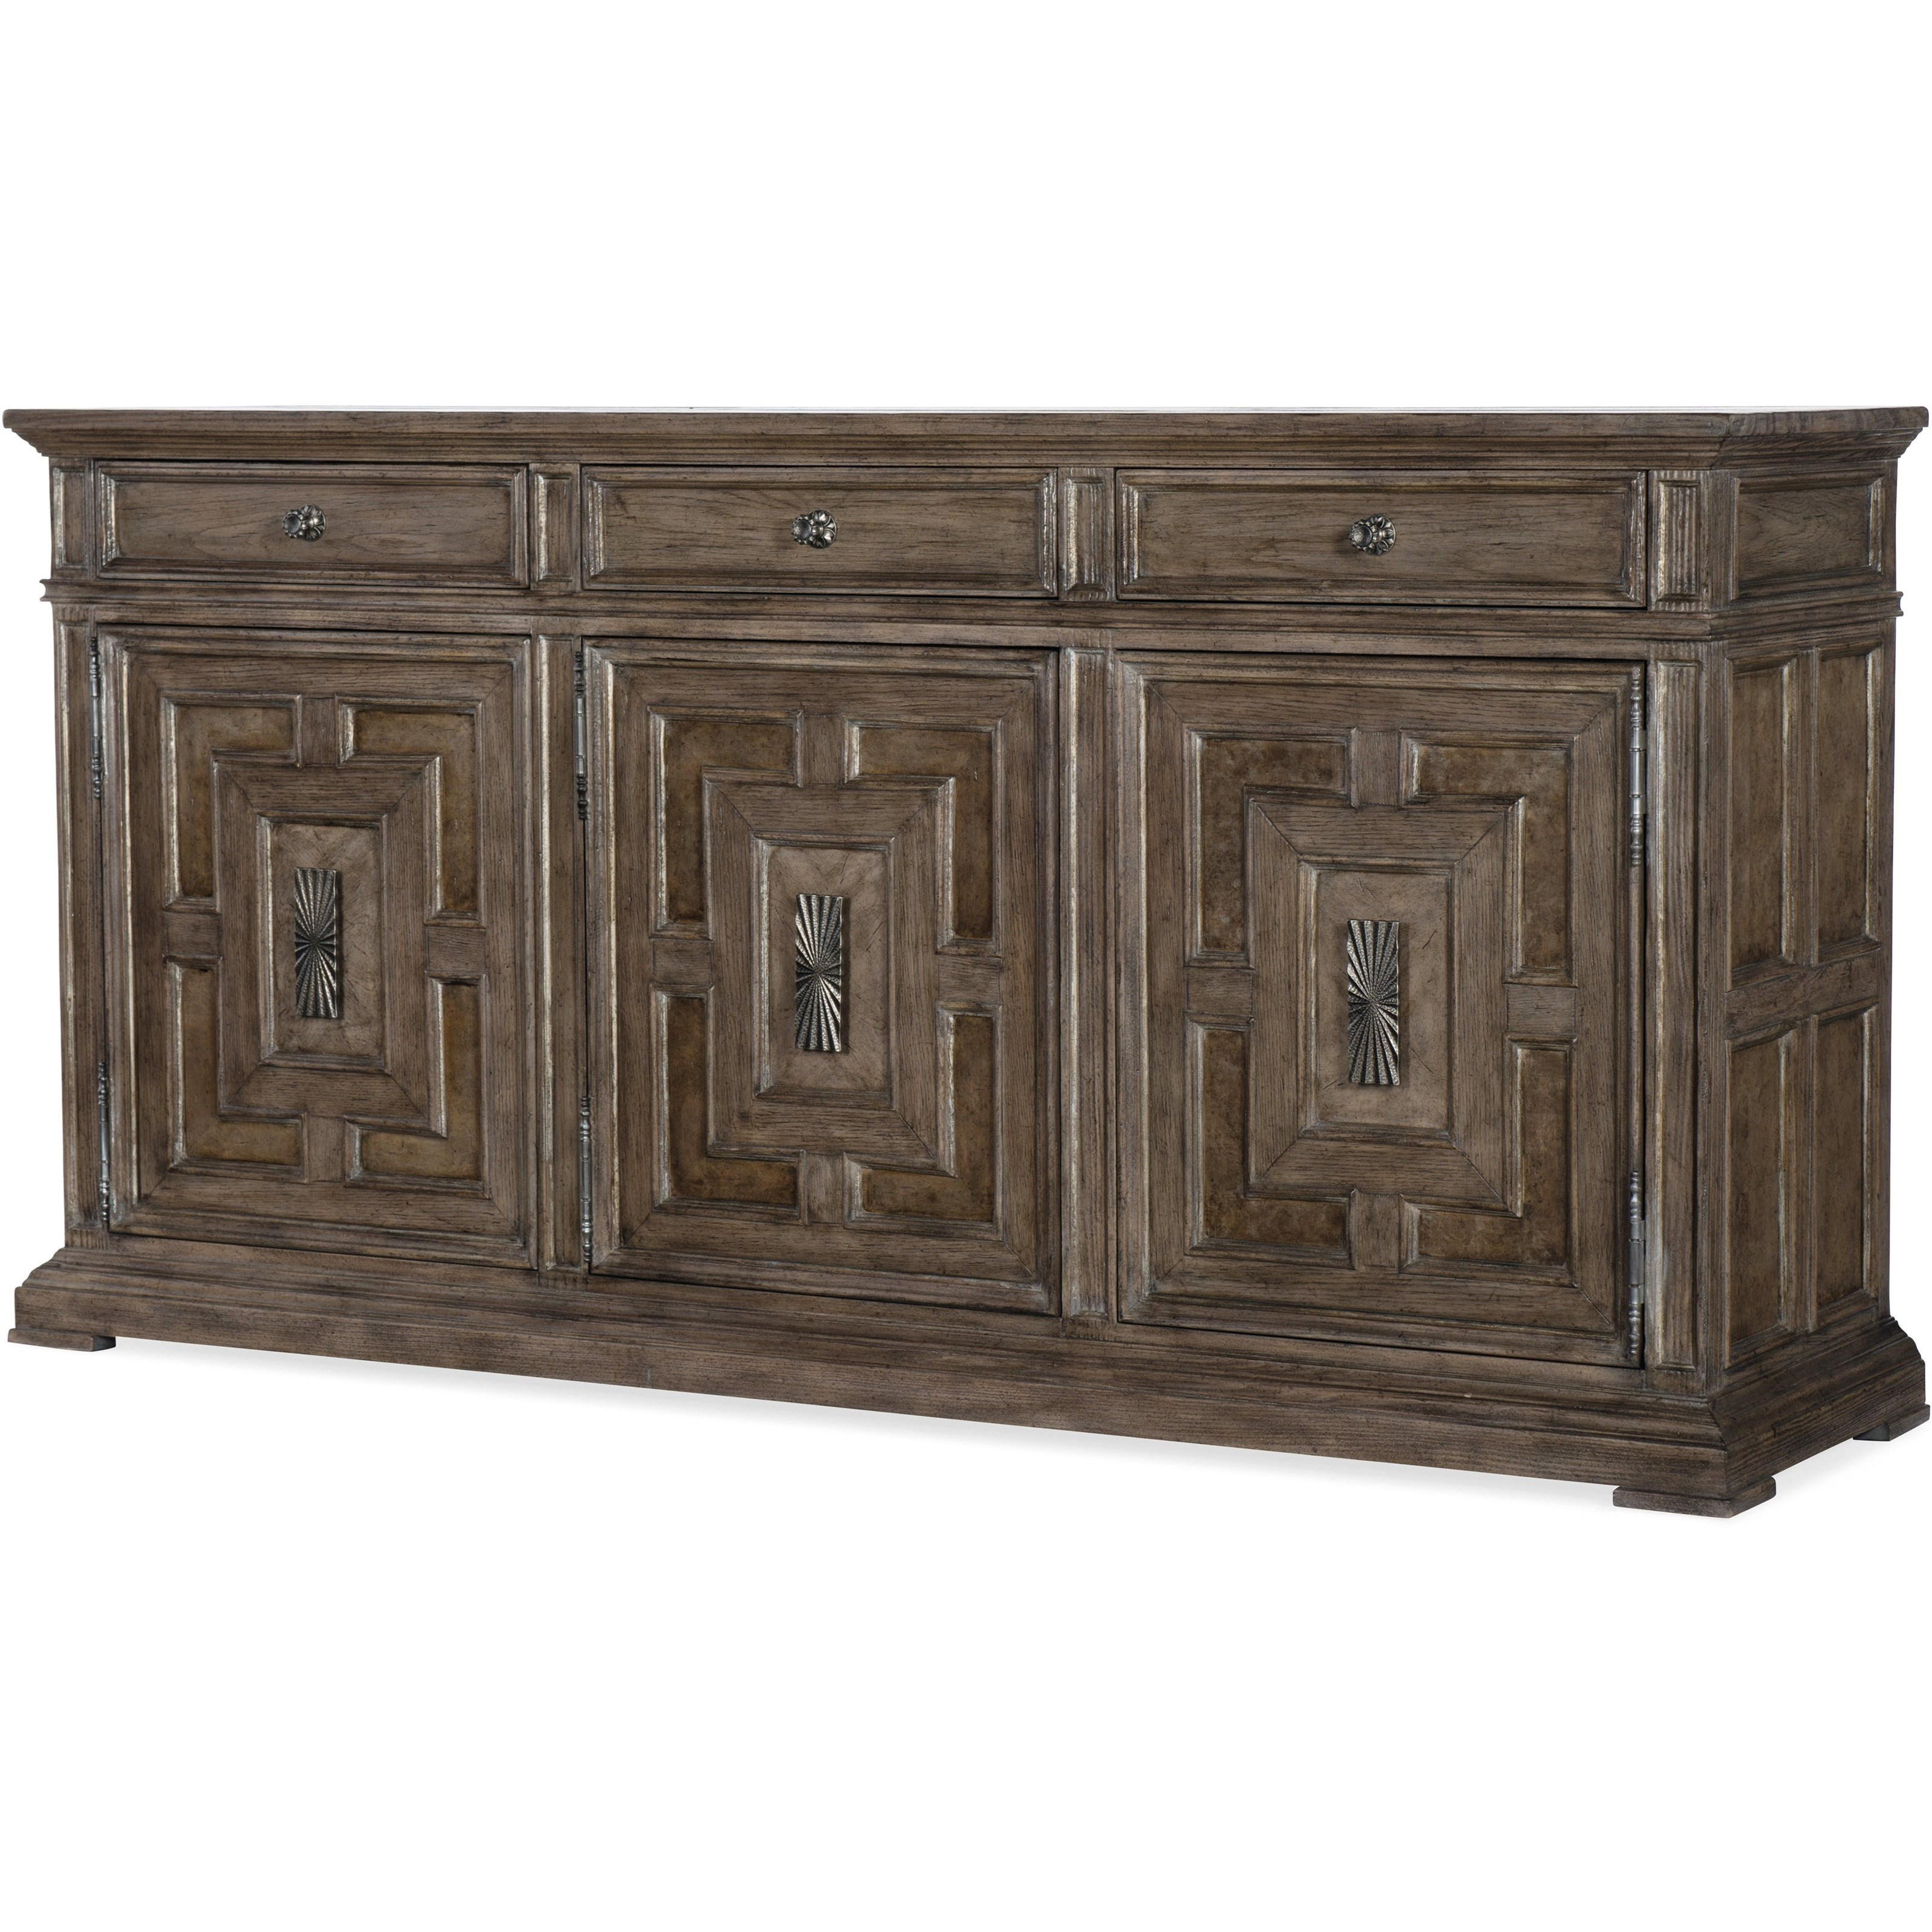 Woodlands Traditional 3 Door And 3 Drawer Buffethooker Furniture At  Dunk & Bright Furniture Within 3 Drawer Storage Buffets (View 20 of 20)